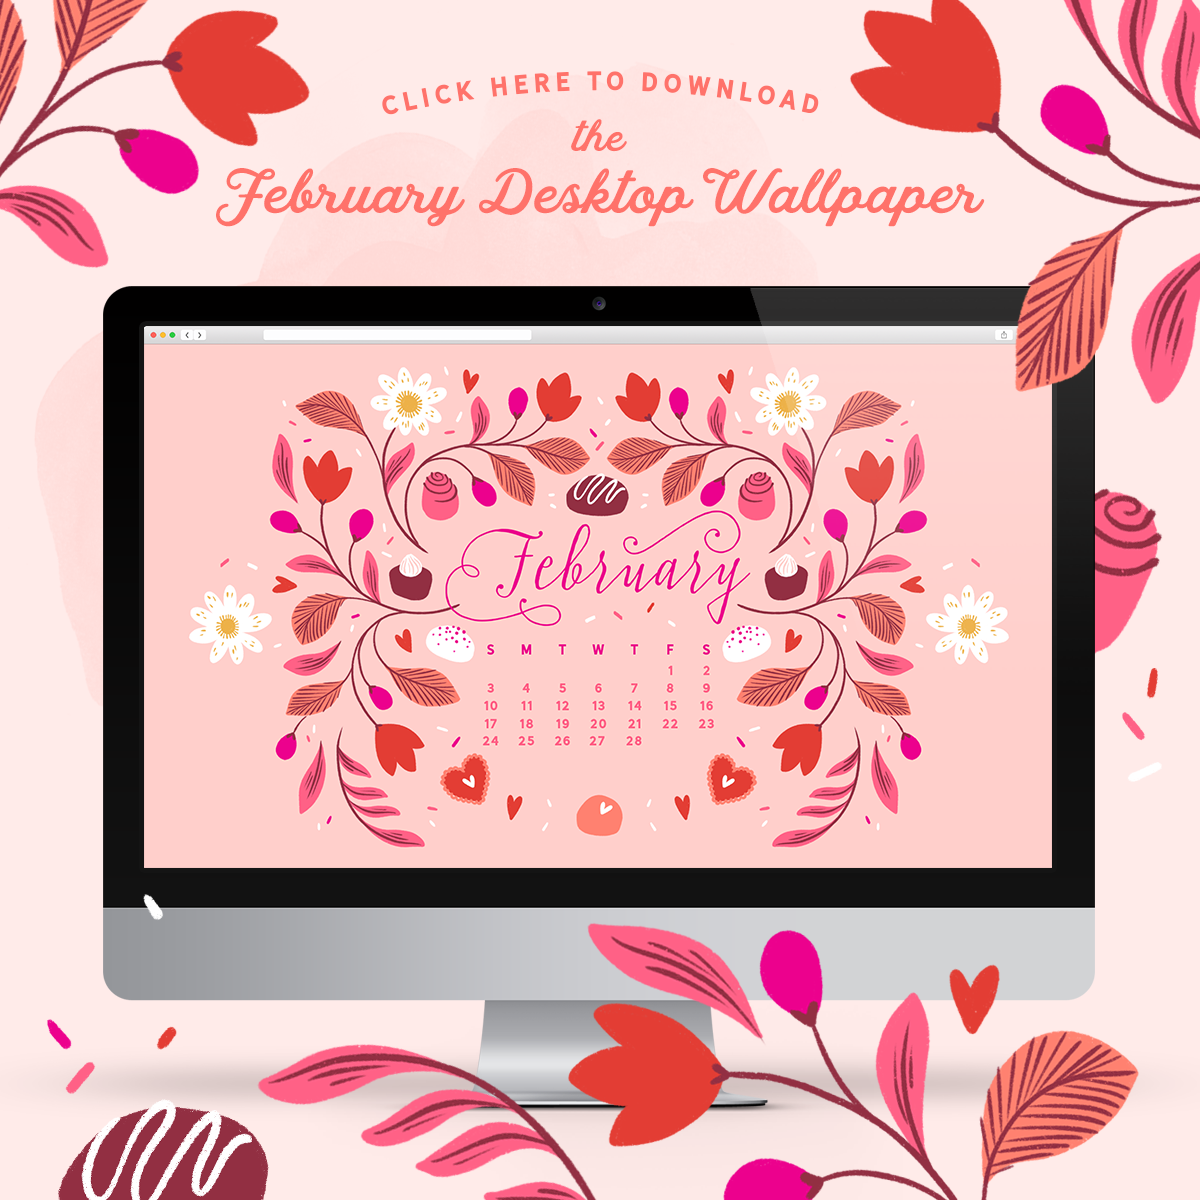 February 2019 Illustrated Desktop Wallpaper